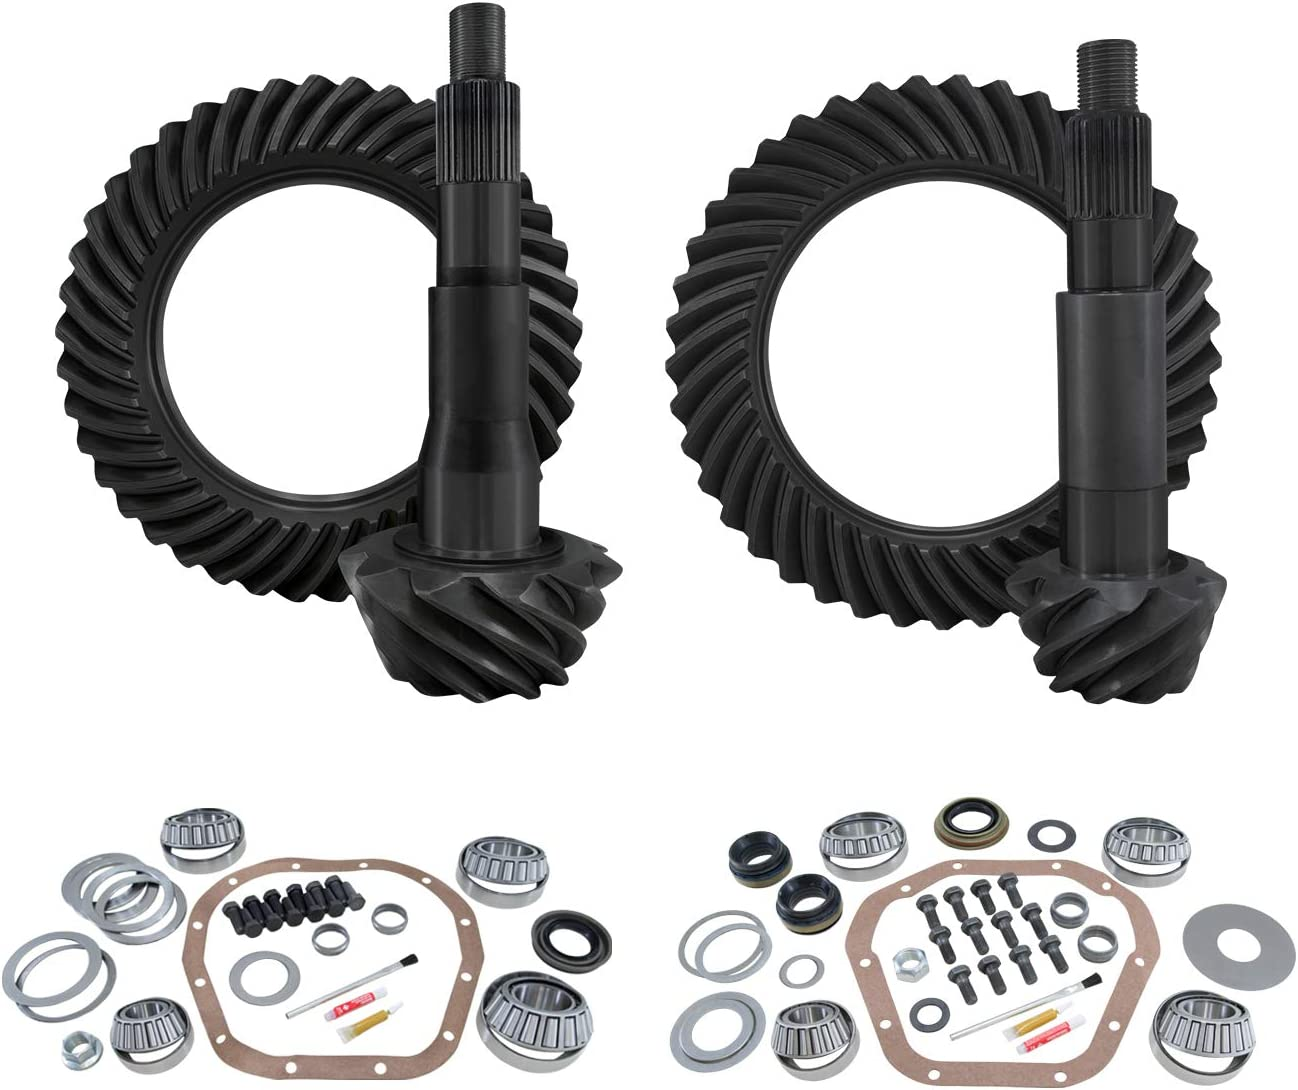 with 4:88 Gear Ratio Yukon Complete Gear and Kit Pakage for 2008-2010 F250 and F350 Dana 60 Reverse